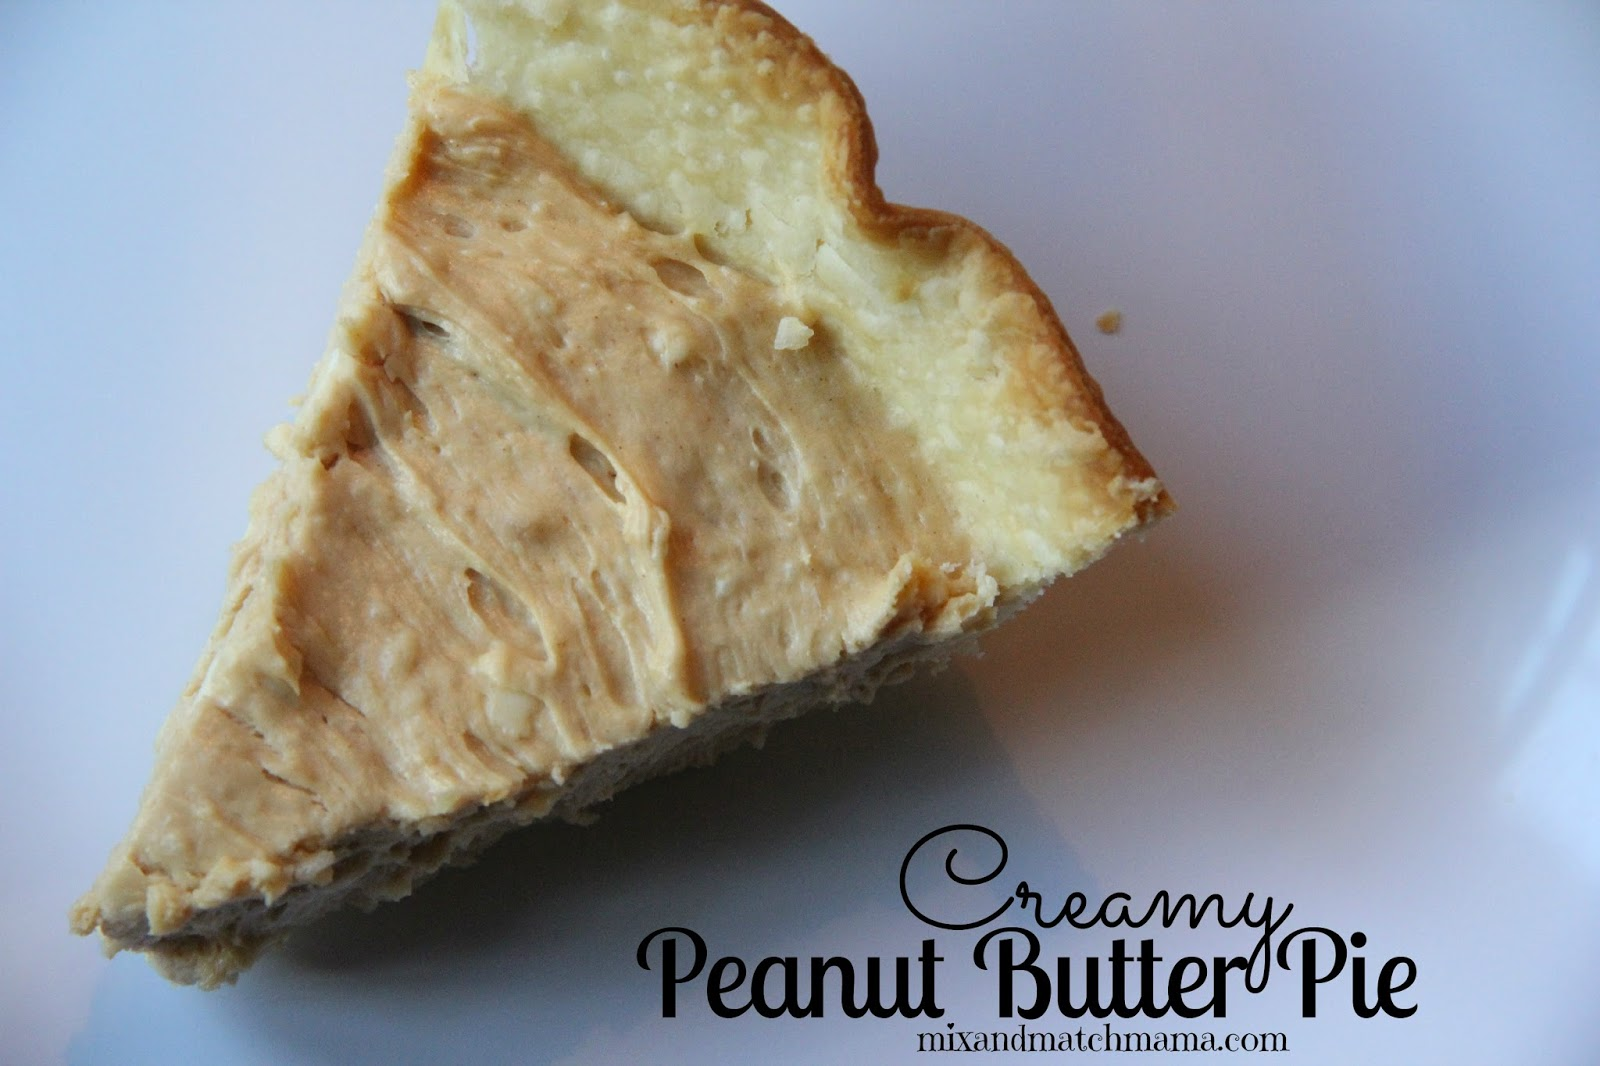 Creamy Peanut Butter Pie - Texas Peanut Producers Board